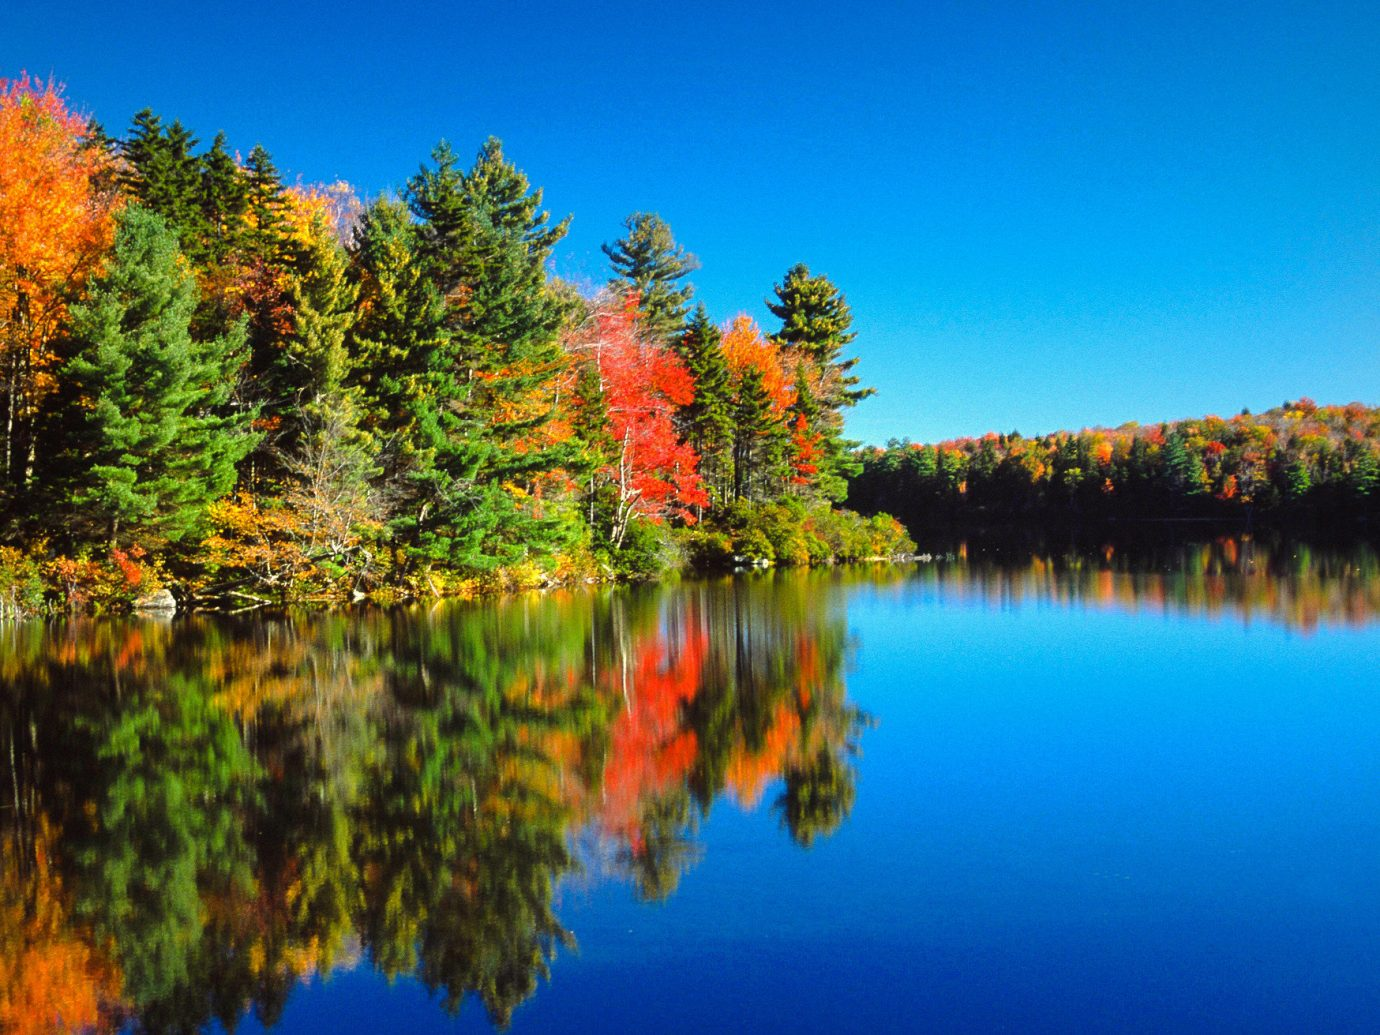 Trip Ideas water tree sky reflection Nature leaf Lake outdoor wilderness autumn River pond reservoir biome mount scenery landscape bank larch temperate broadleaf and mixed forest evening computer wallpaper calm Forest wetland surrounded